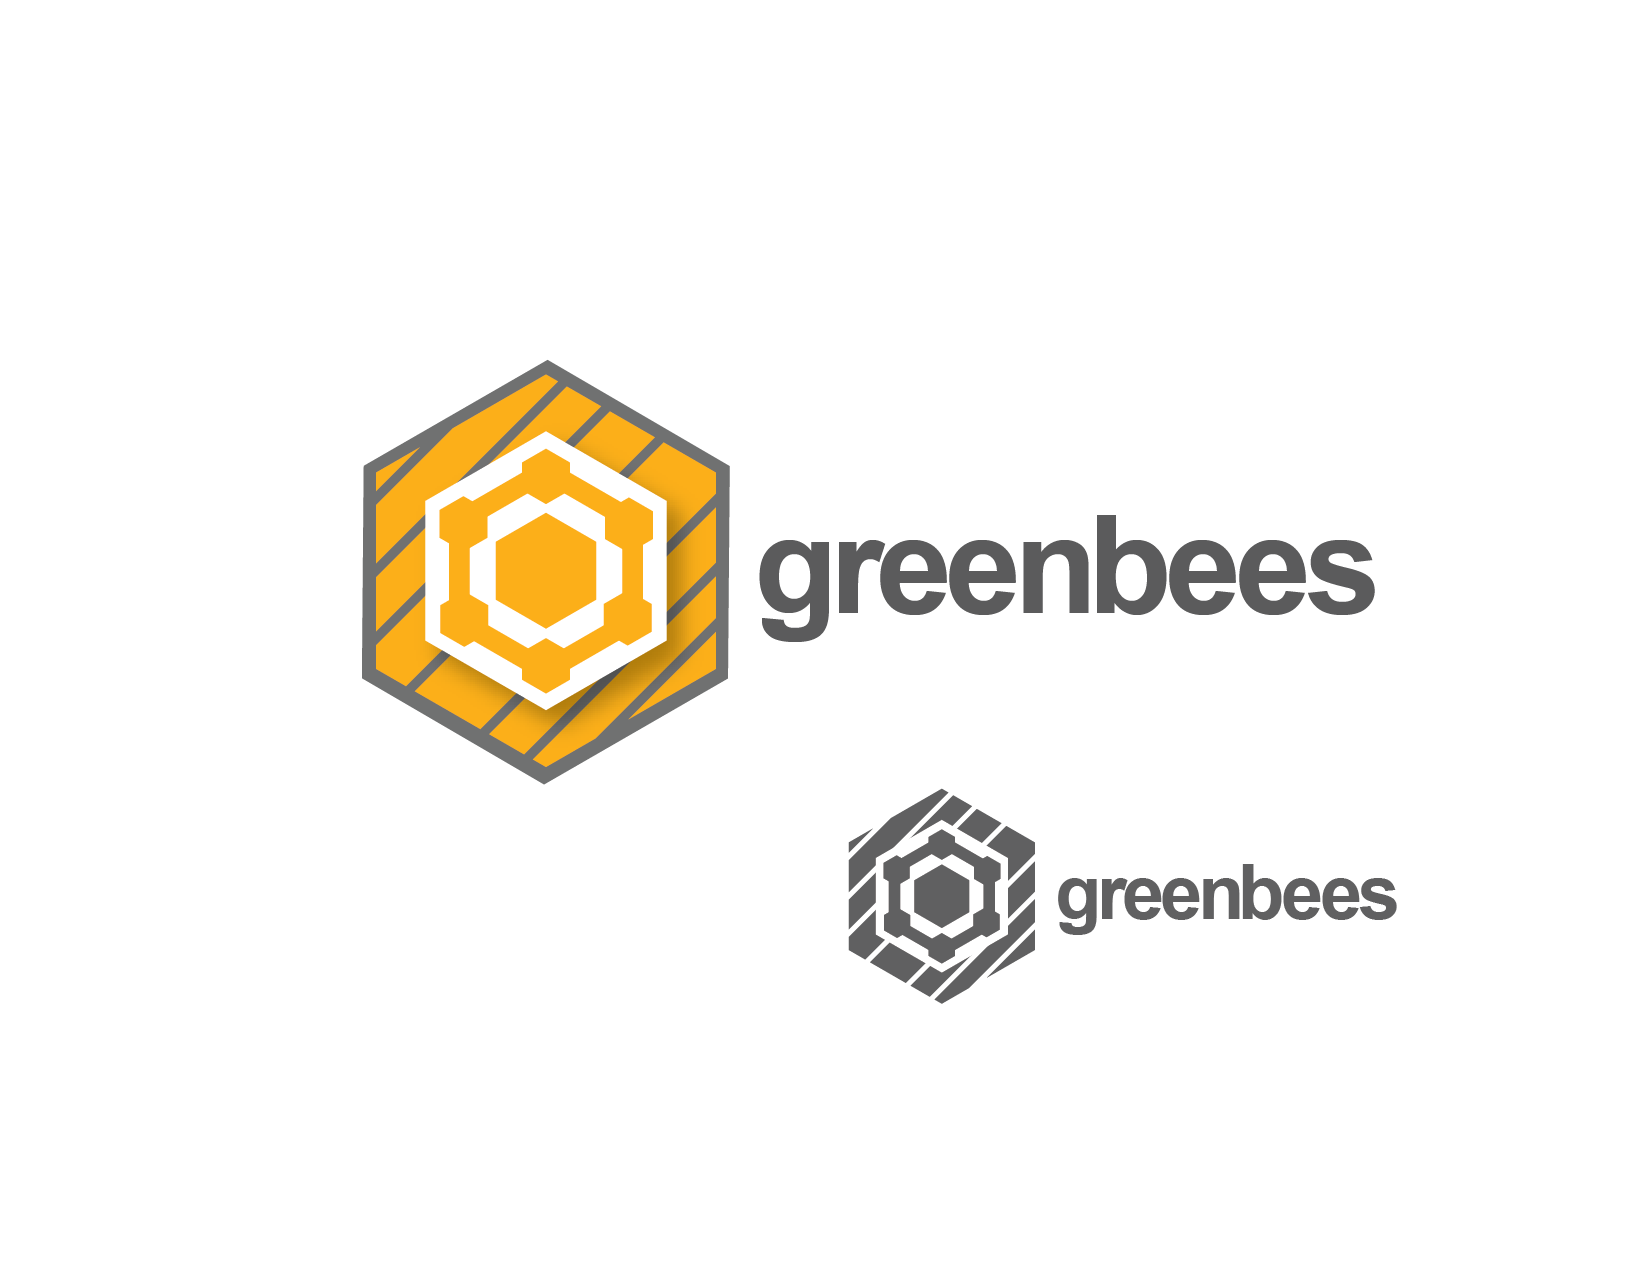 Logo Design by Private User - Entry No. 140 in the Logo Design Contest Greenbees Logo Design.